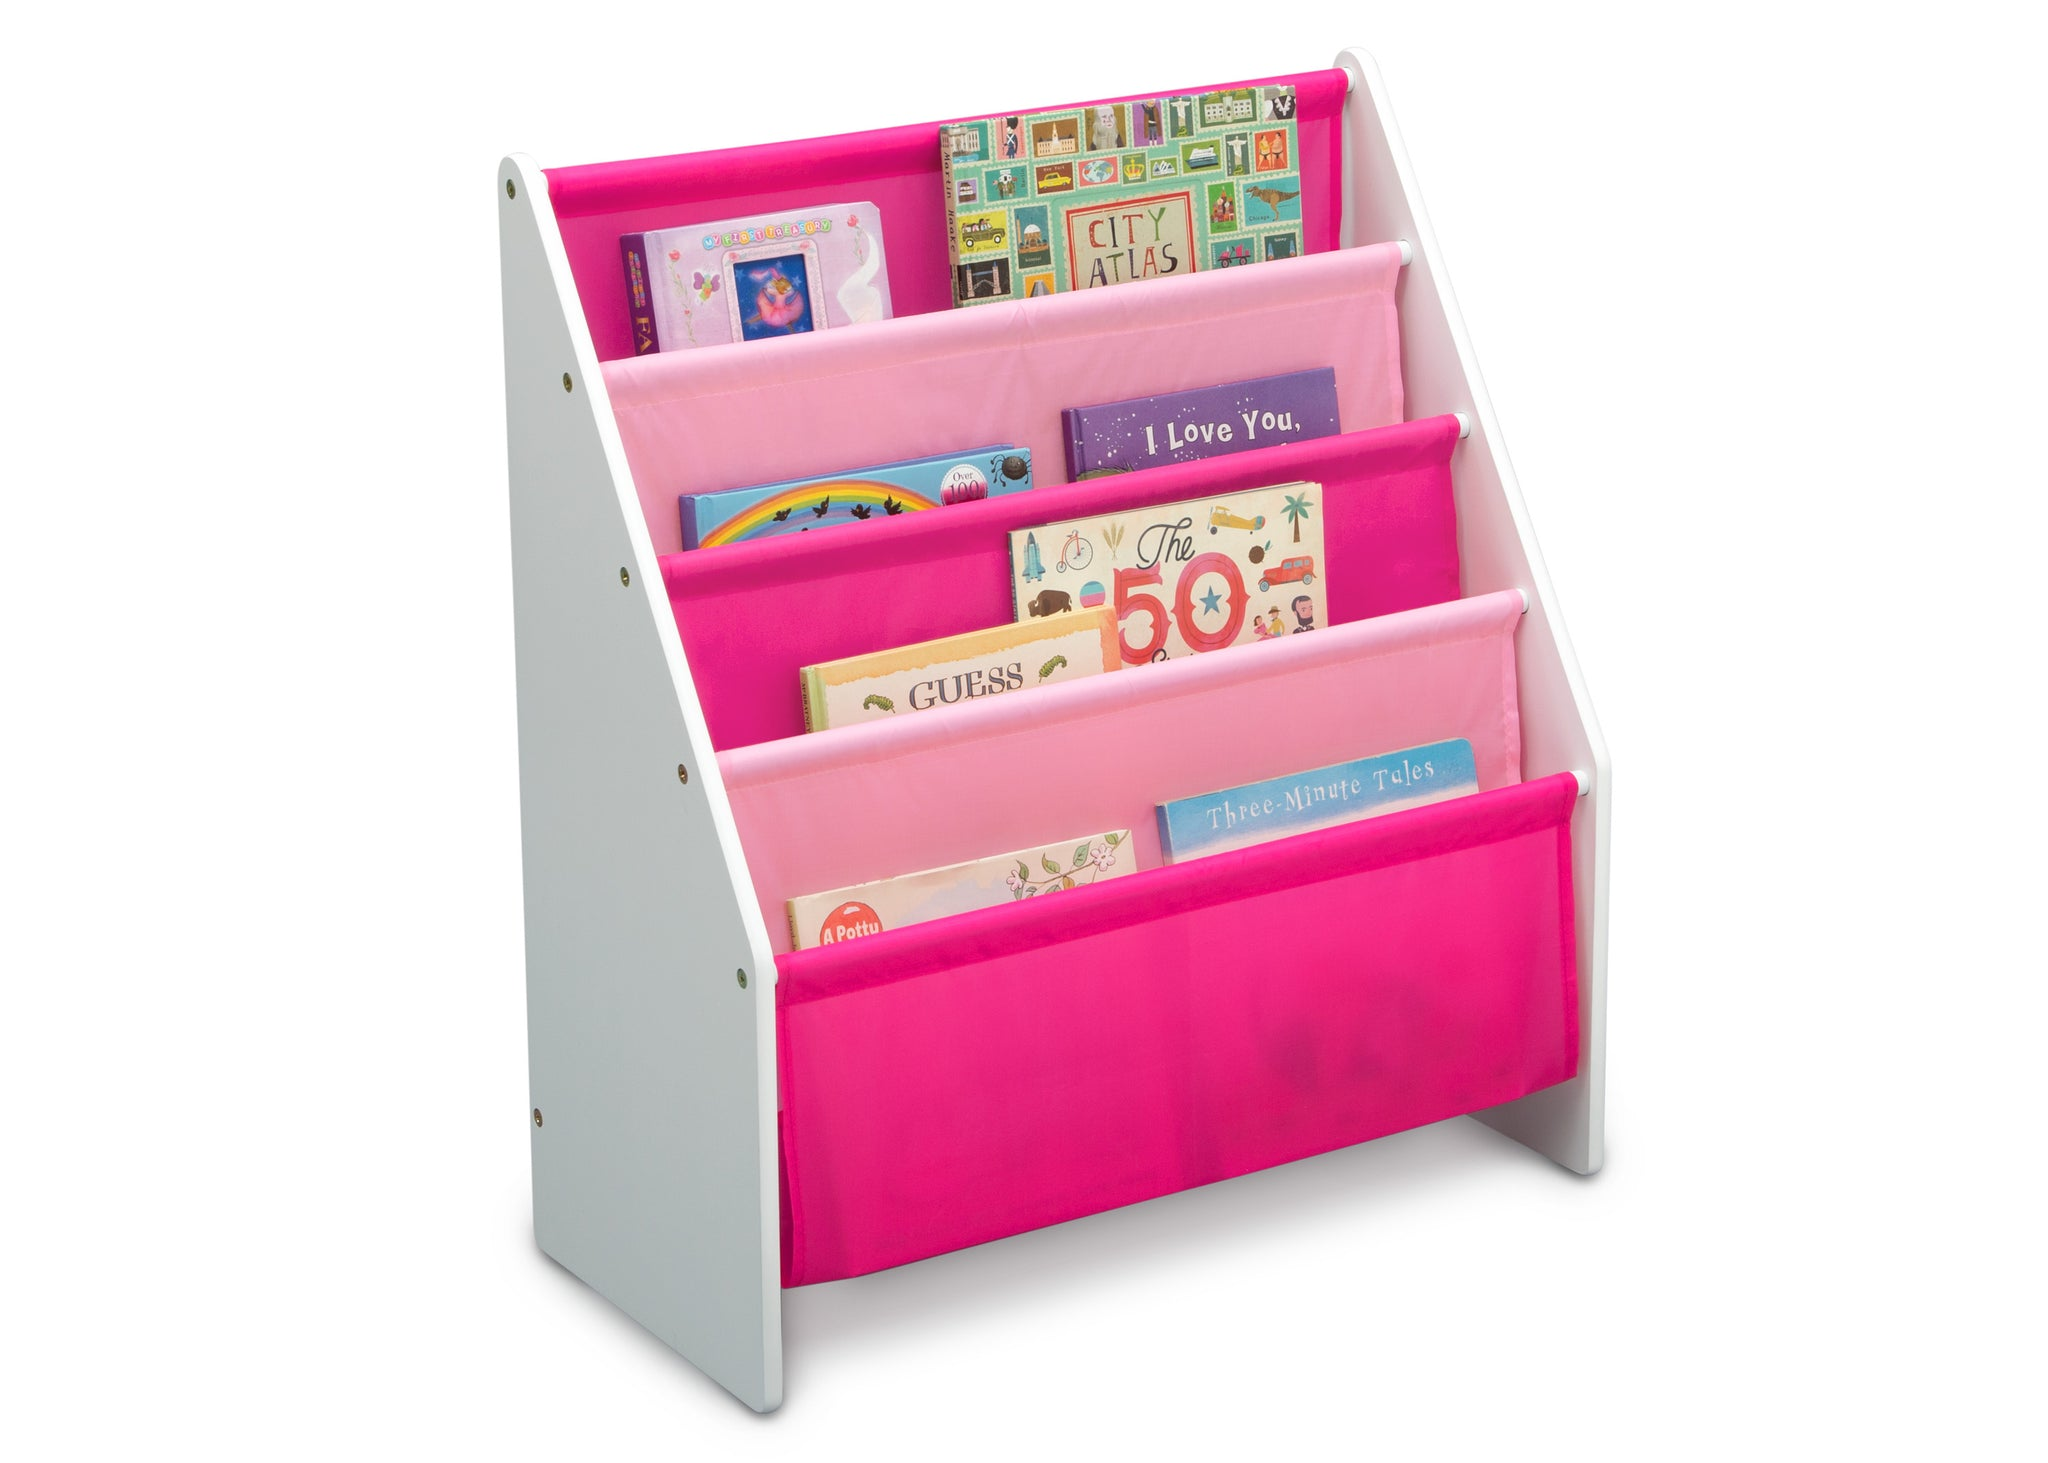 Delta Children White/Pink (130) Sling Book Rack Bookshelf for Kids, Right Silo View with Props Bianca White (130)